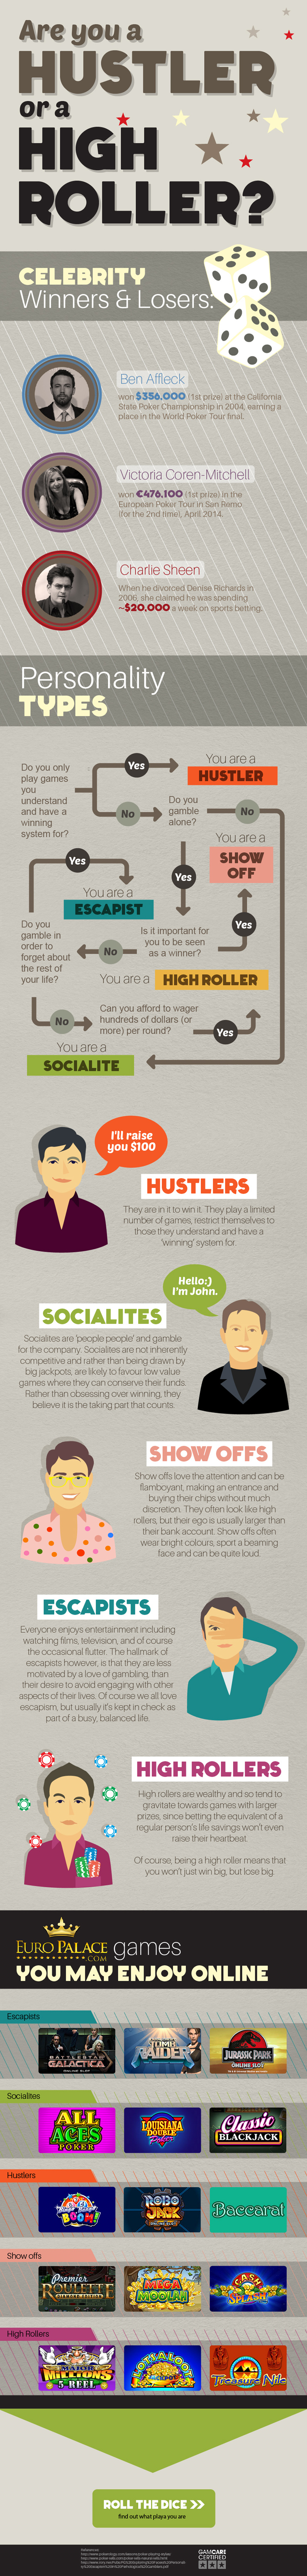 Are You a Hustler or a High Roller?